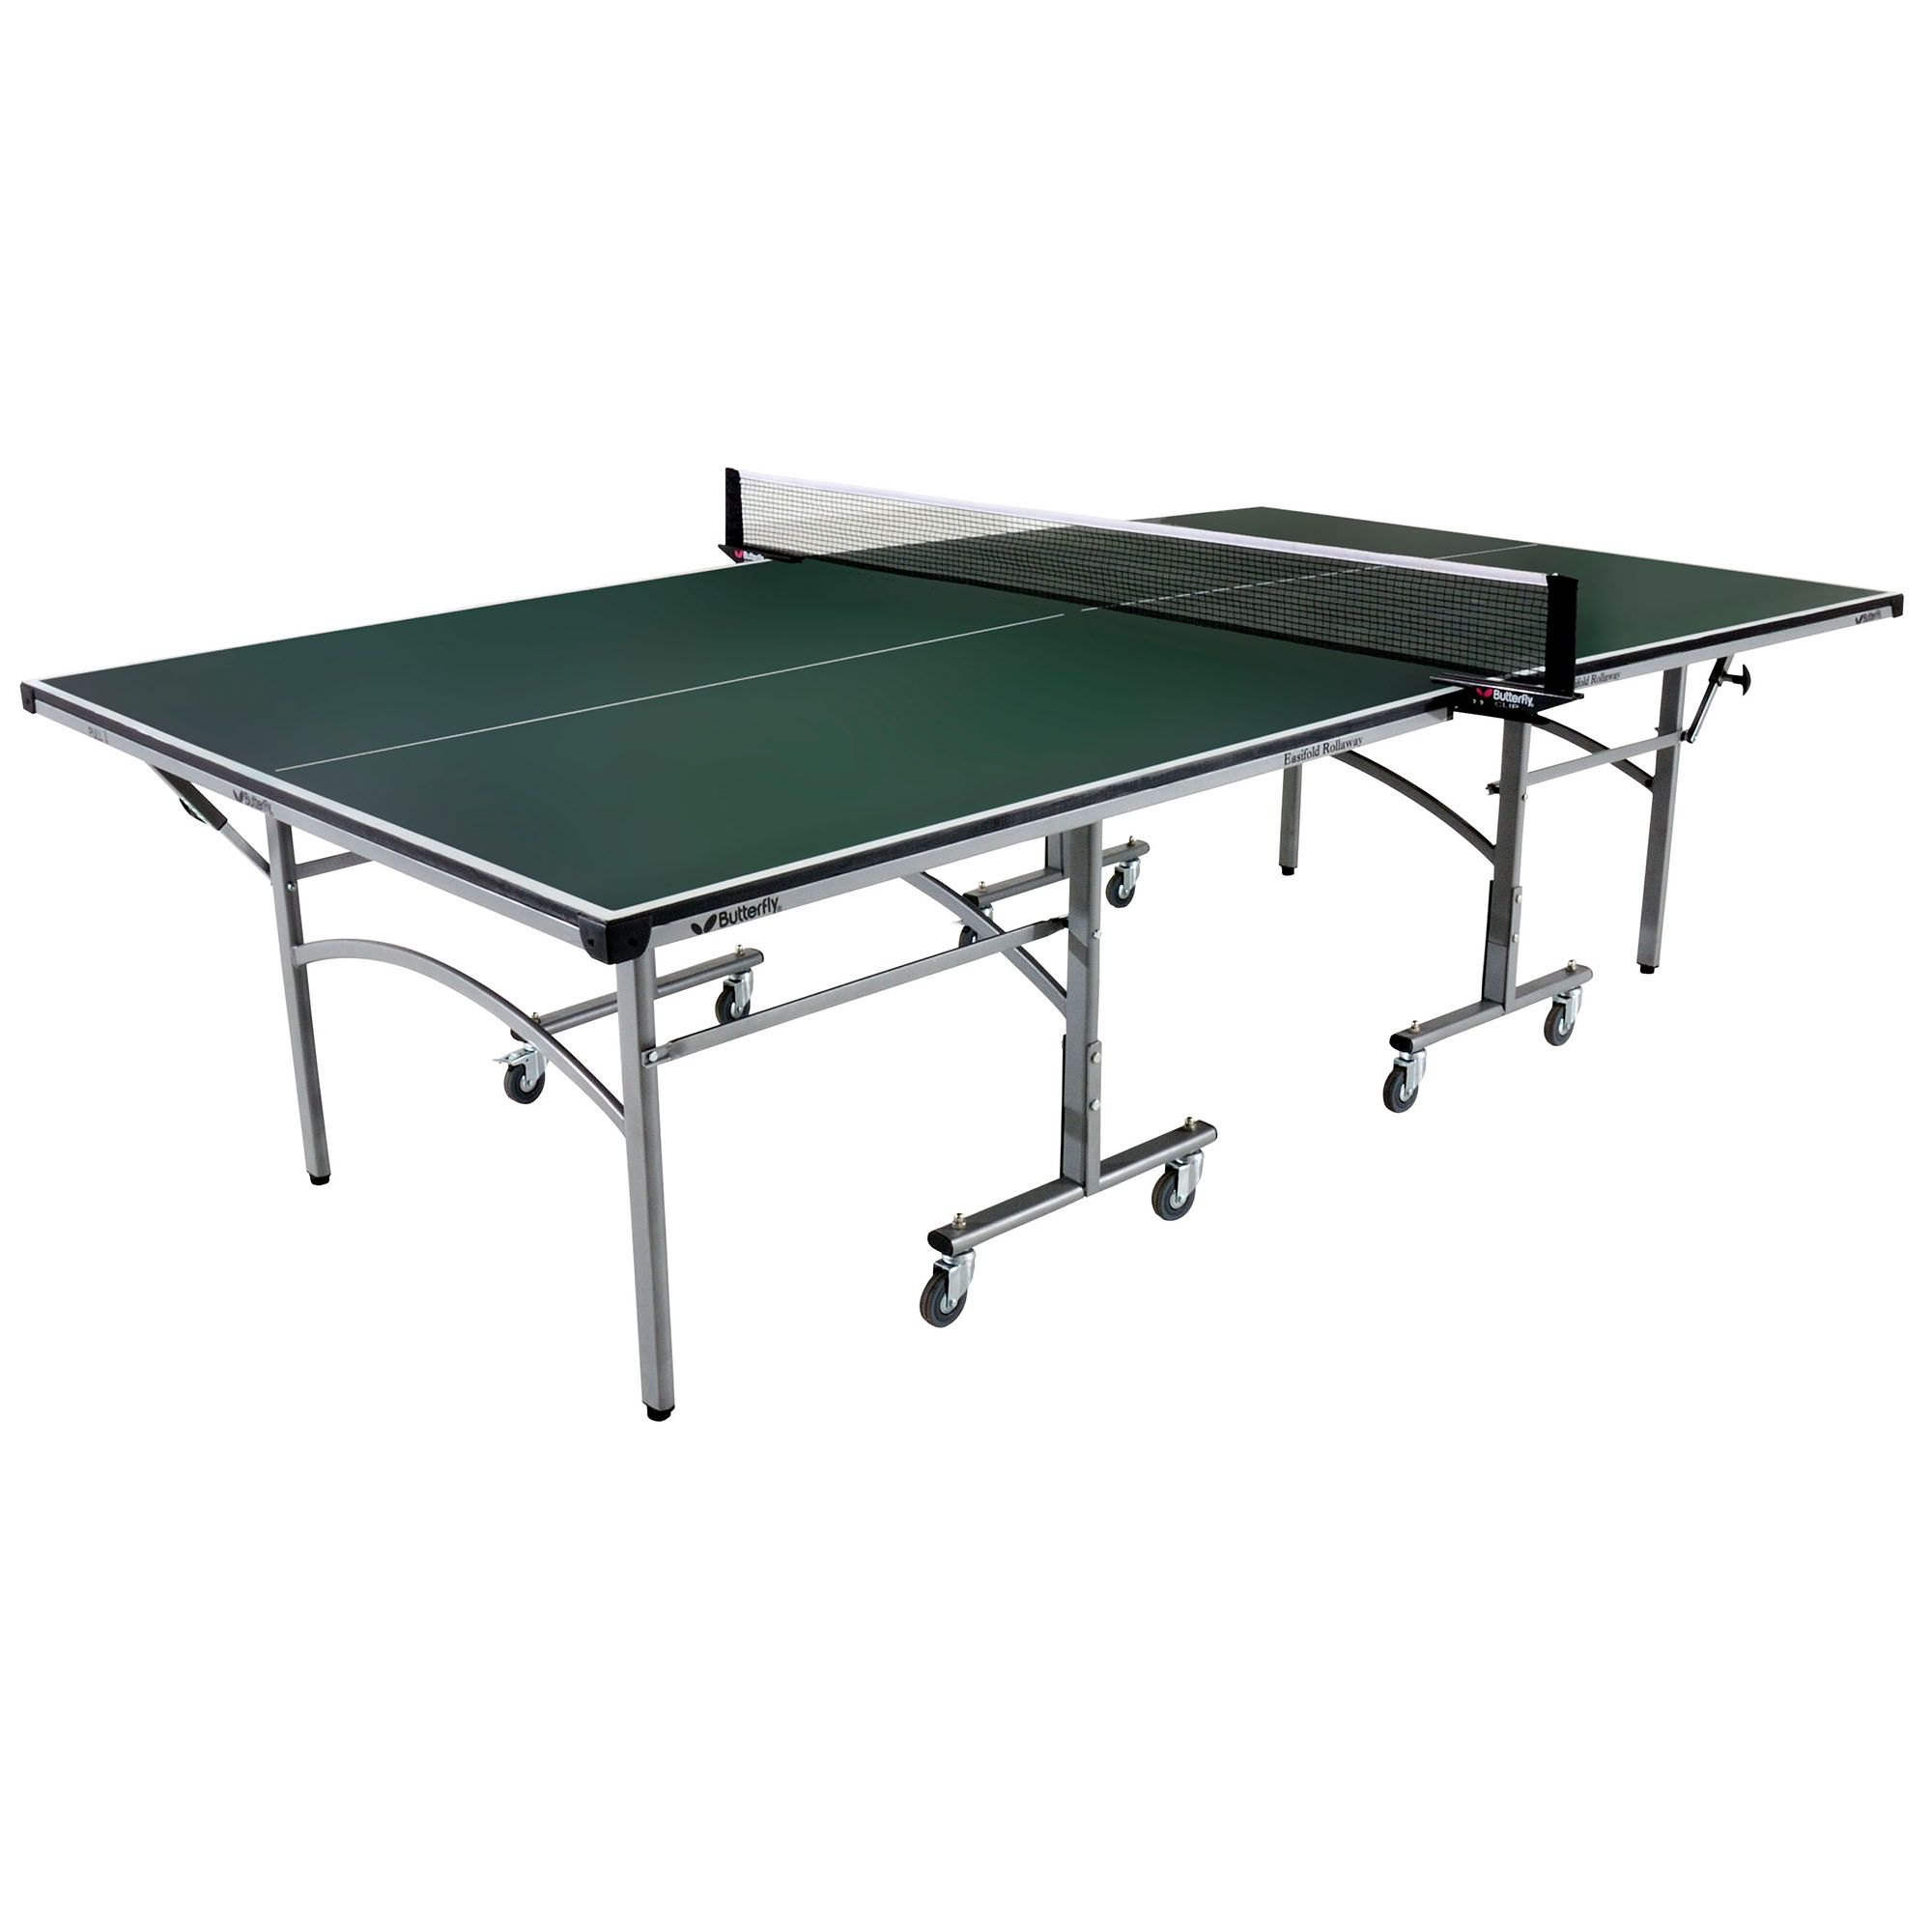 Butterfly easifold indoor table tennis table - Used outdoor table tennis tables for sale ...